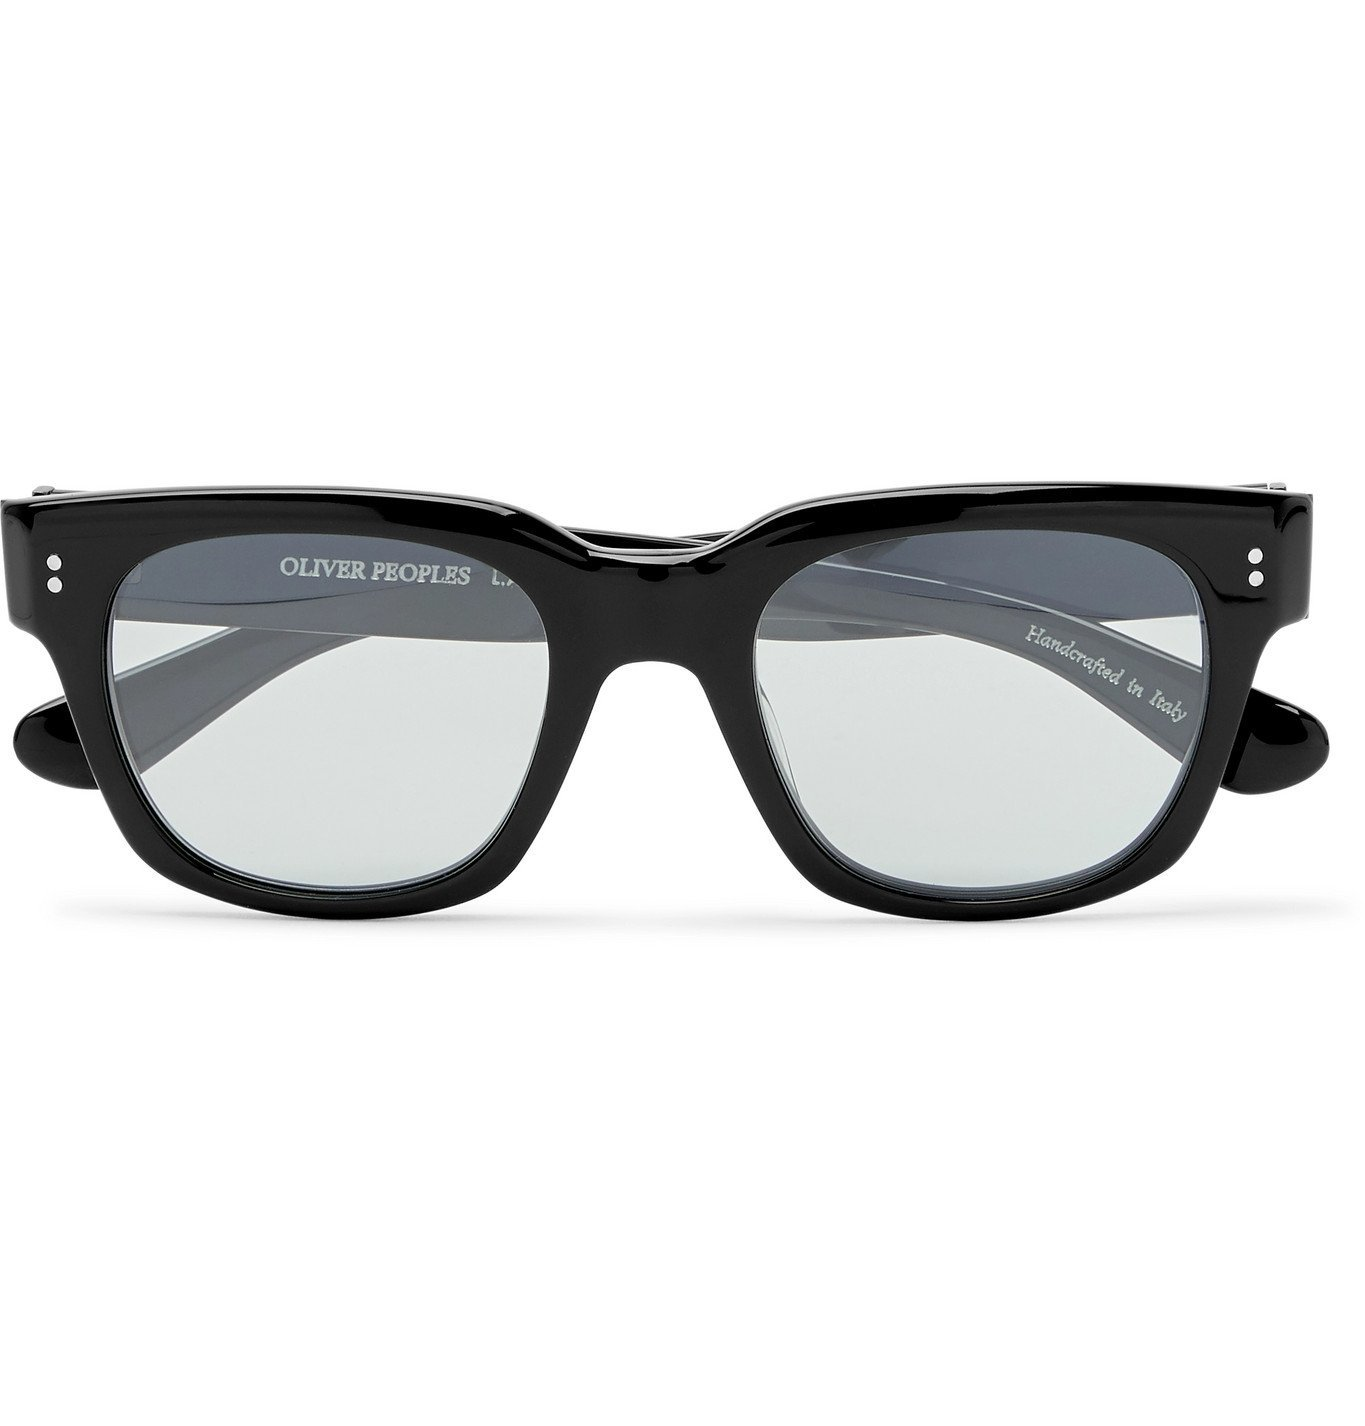 Oliver Peoples - D-Frame Acetate Sunglasses - Black